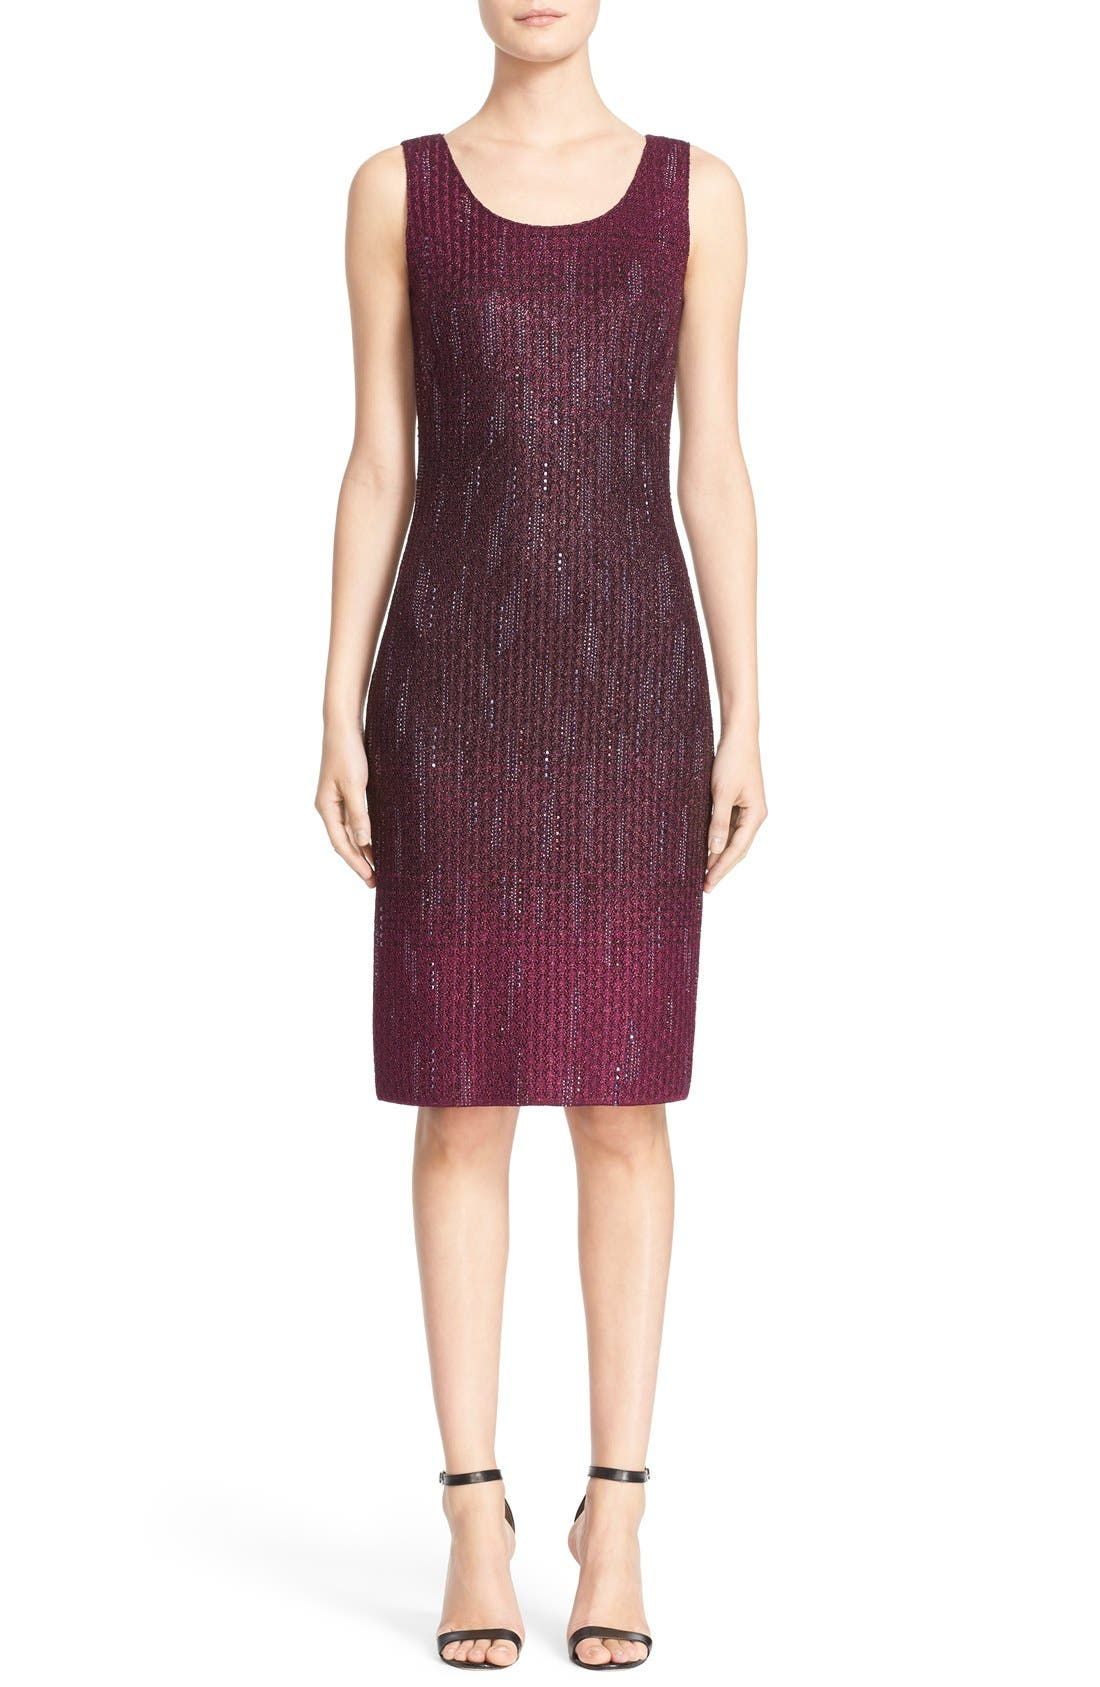 Main Image - St. John Collection 'Kira' Crystal Embellished Ombré Knit Sheath Dress